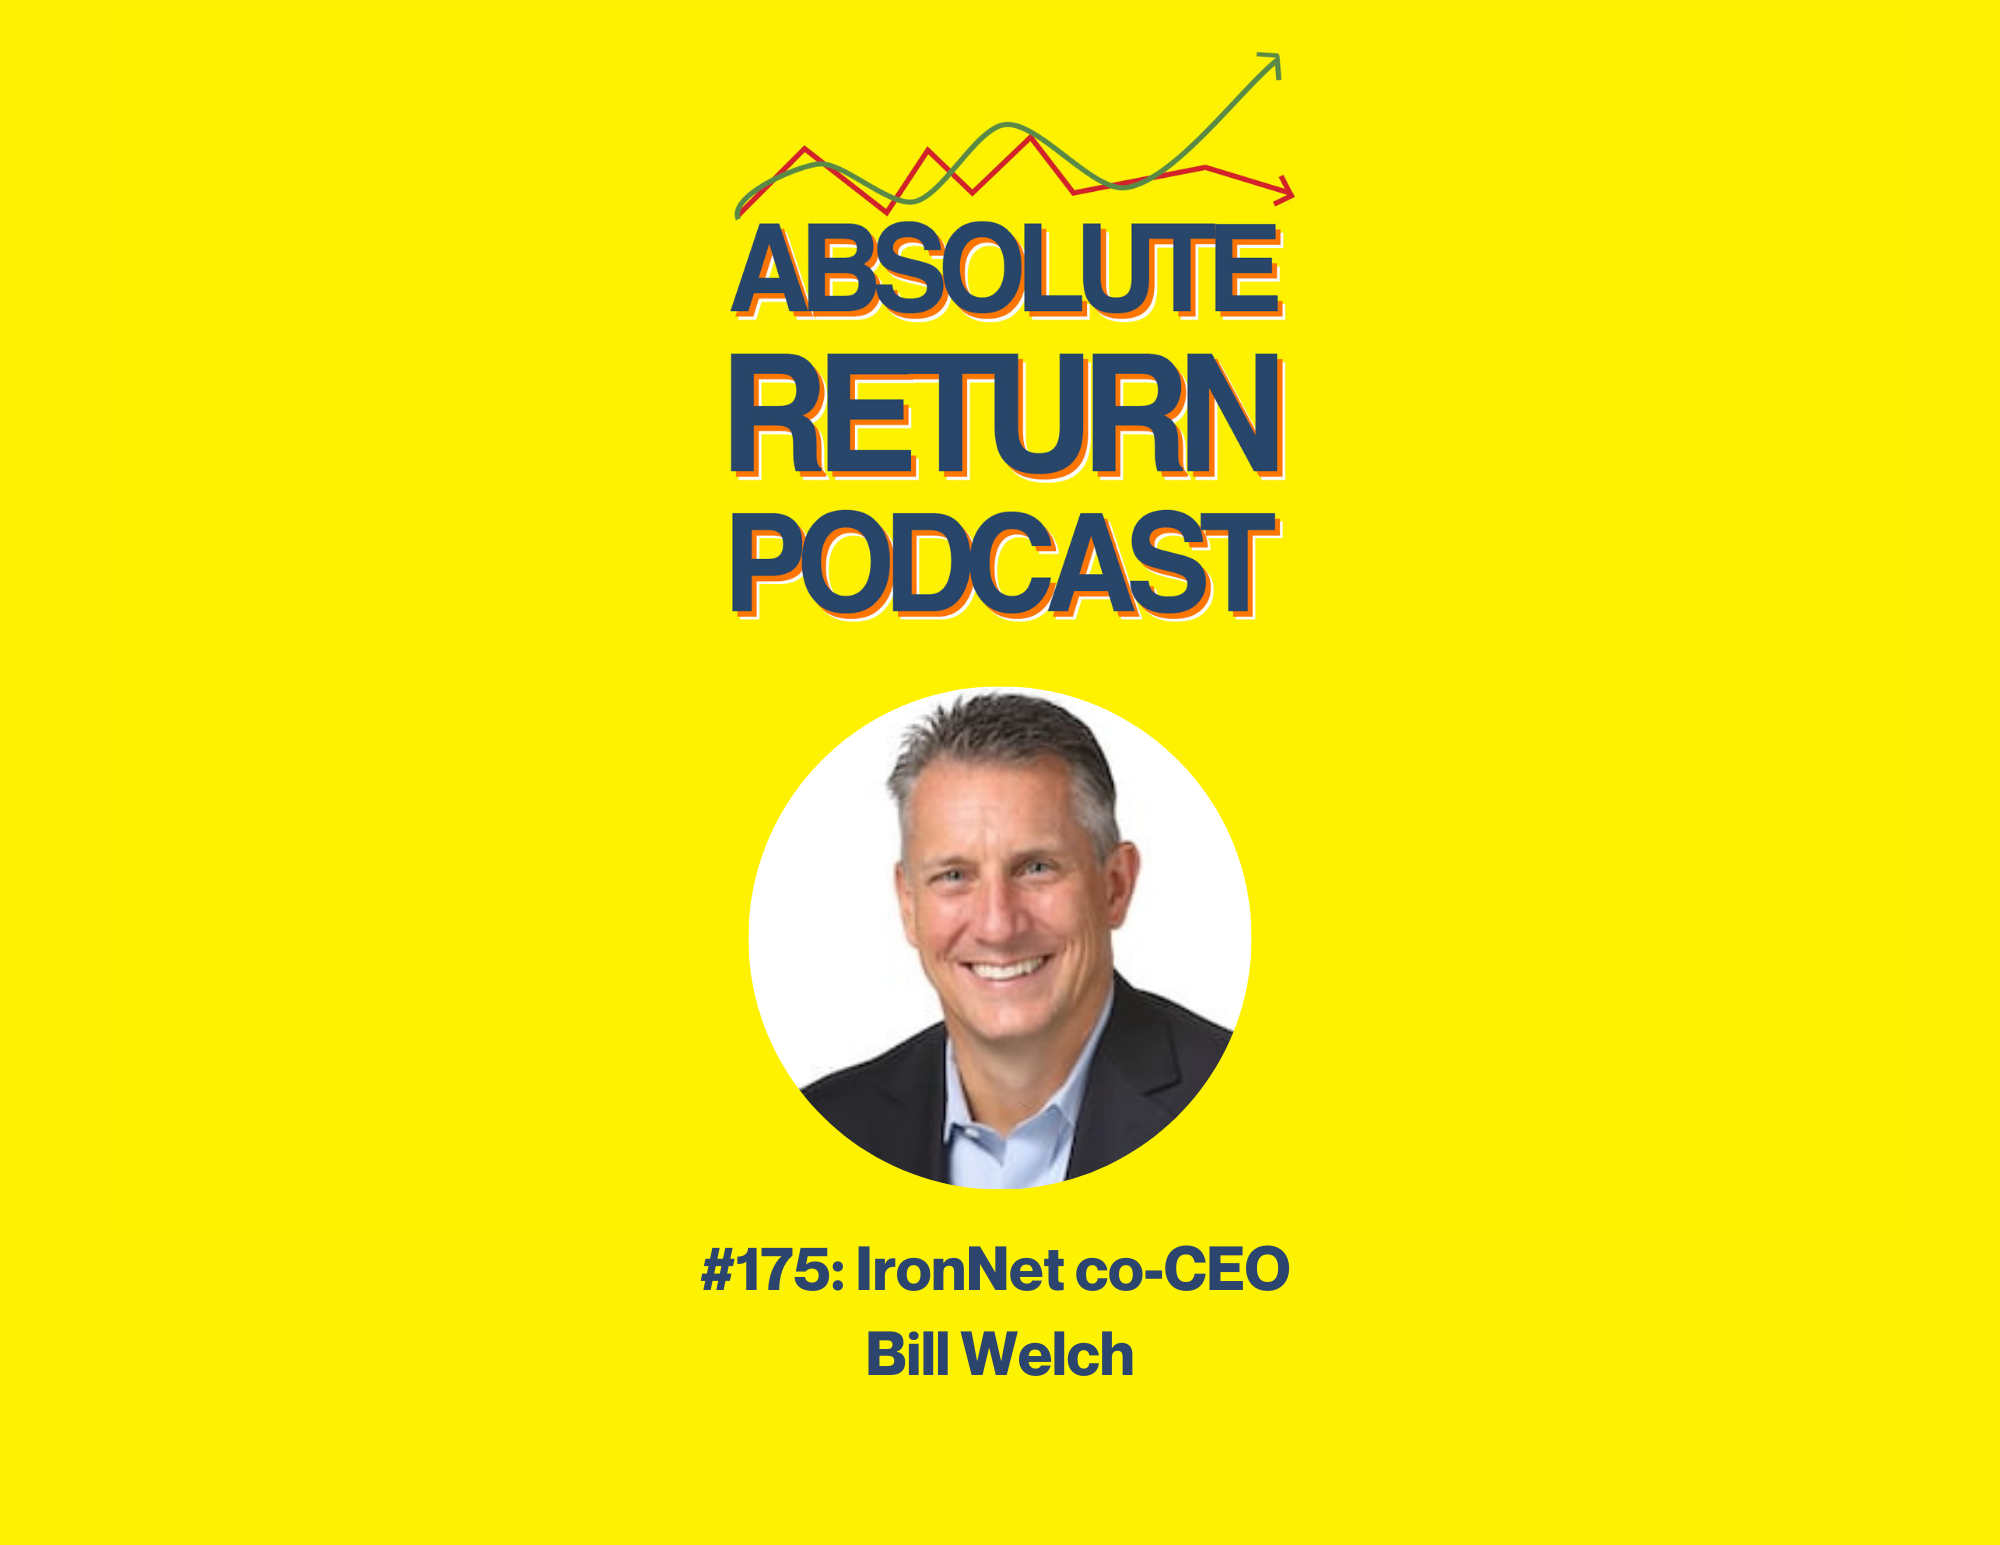 Absolute Return Podcast #175: Leadership Chat: IronNet co-CEO Bill Welch